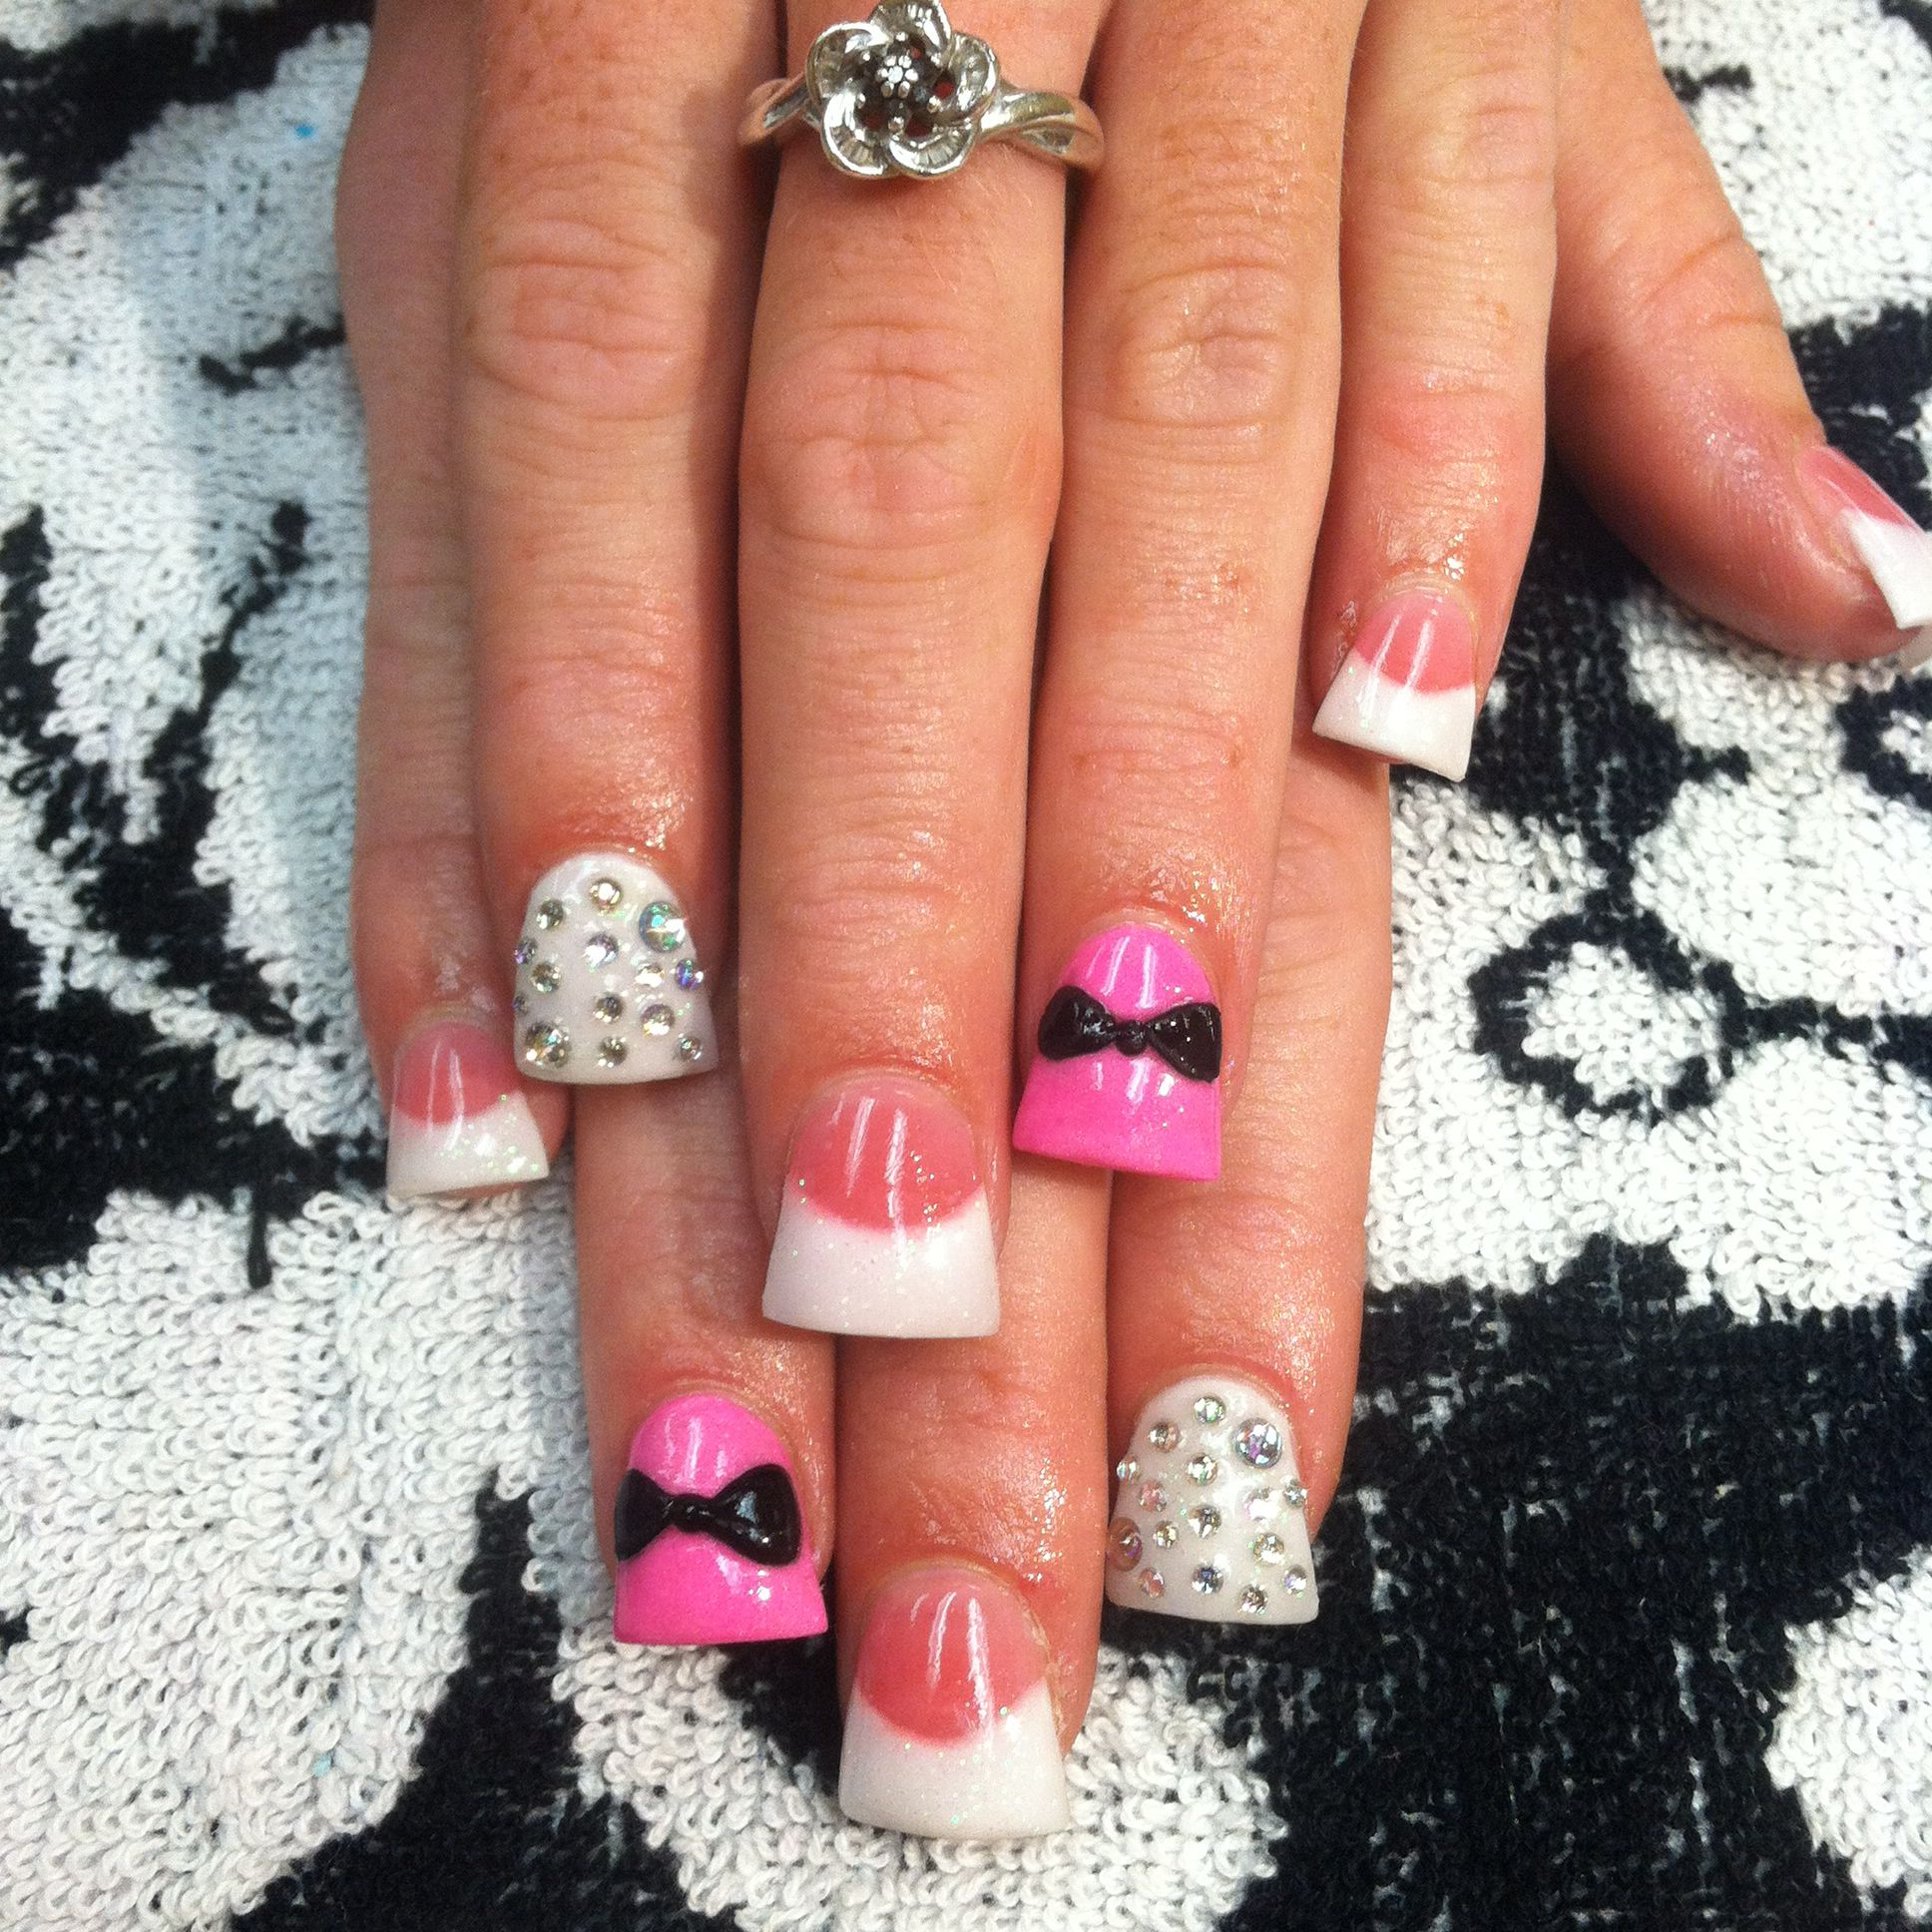 Pin by demmy on nails | Nails inspiration, Nails, Beauty